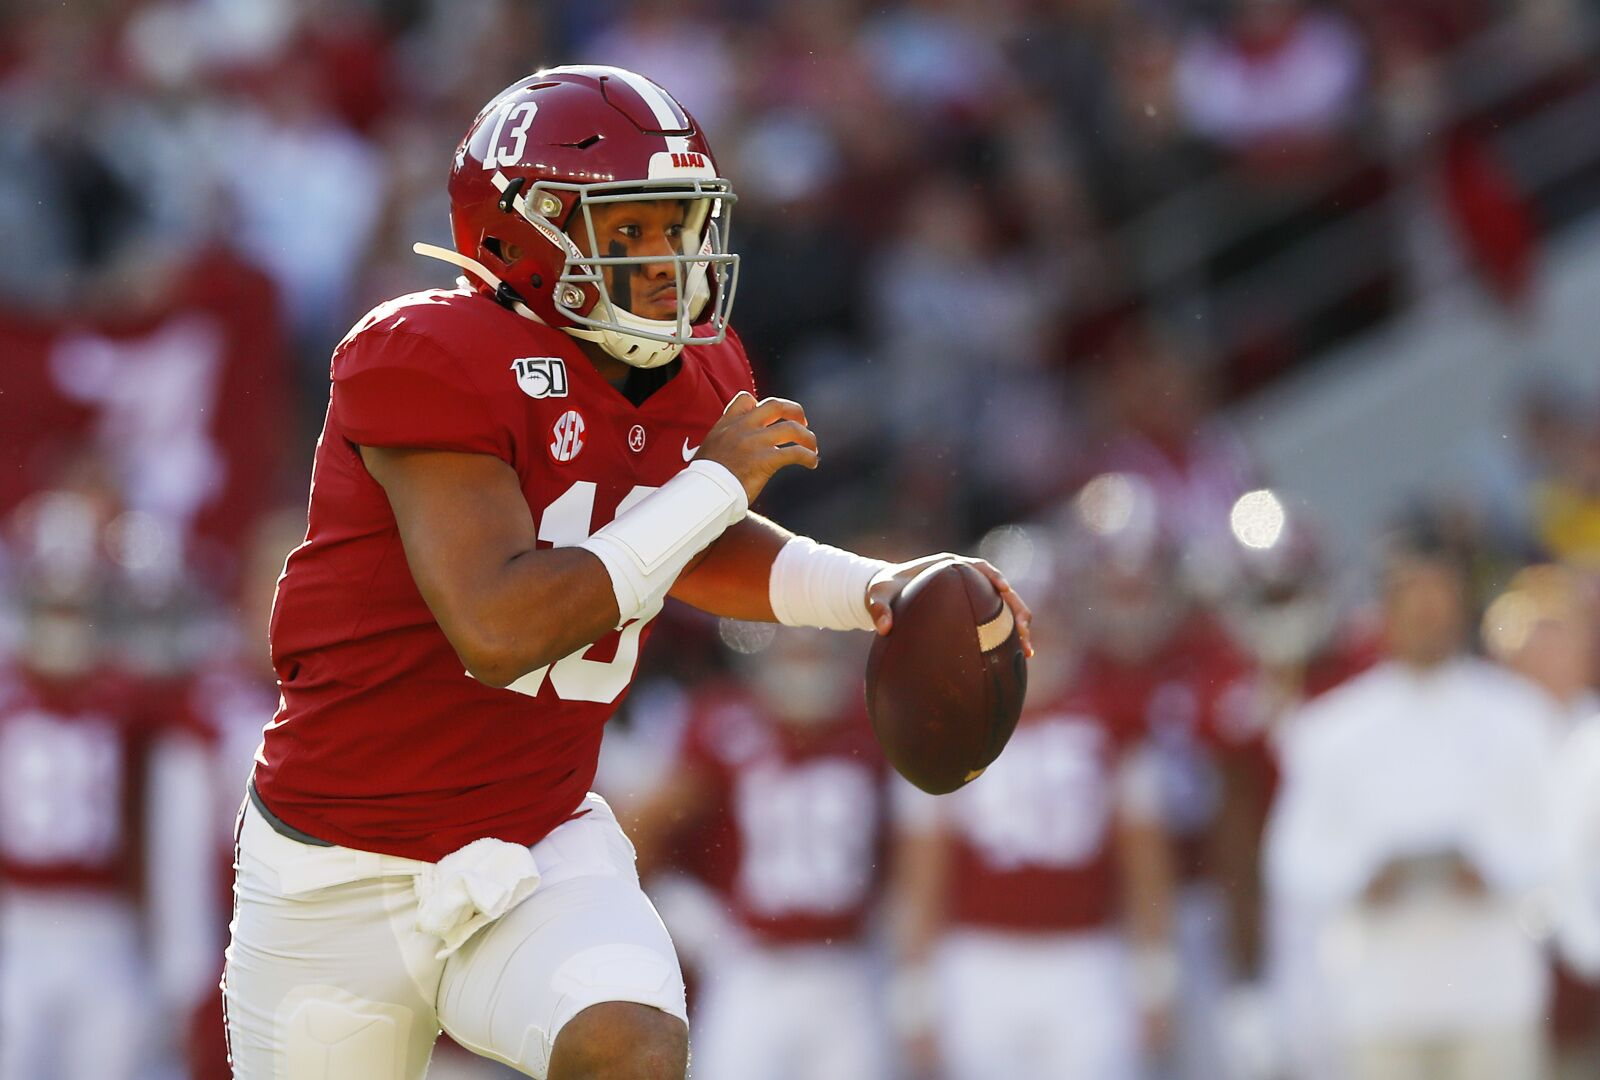 2020 NFL Draft: 5 Teams that should trade up for Tua Tagovailoa